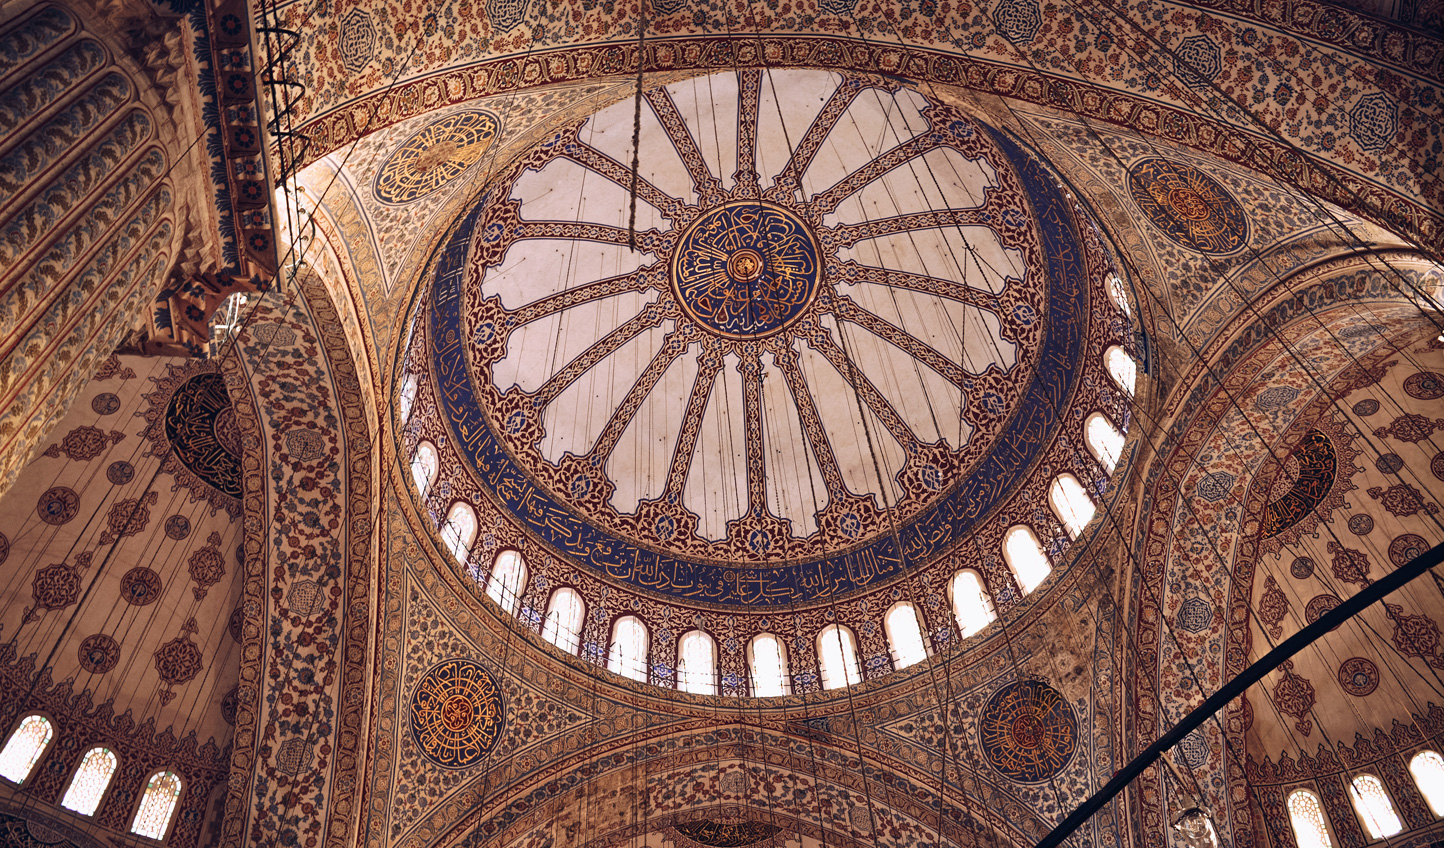 Marvel at the wonder and intricate design of the Blue Mosque